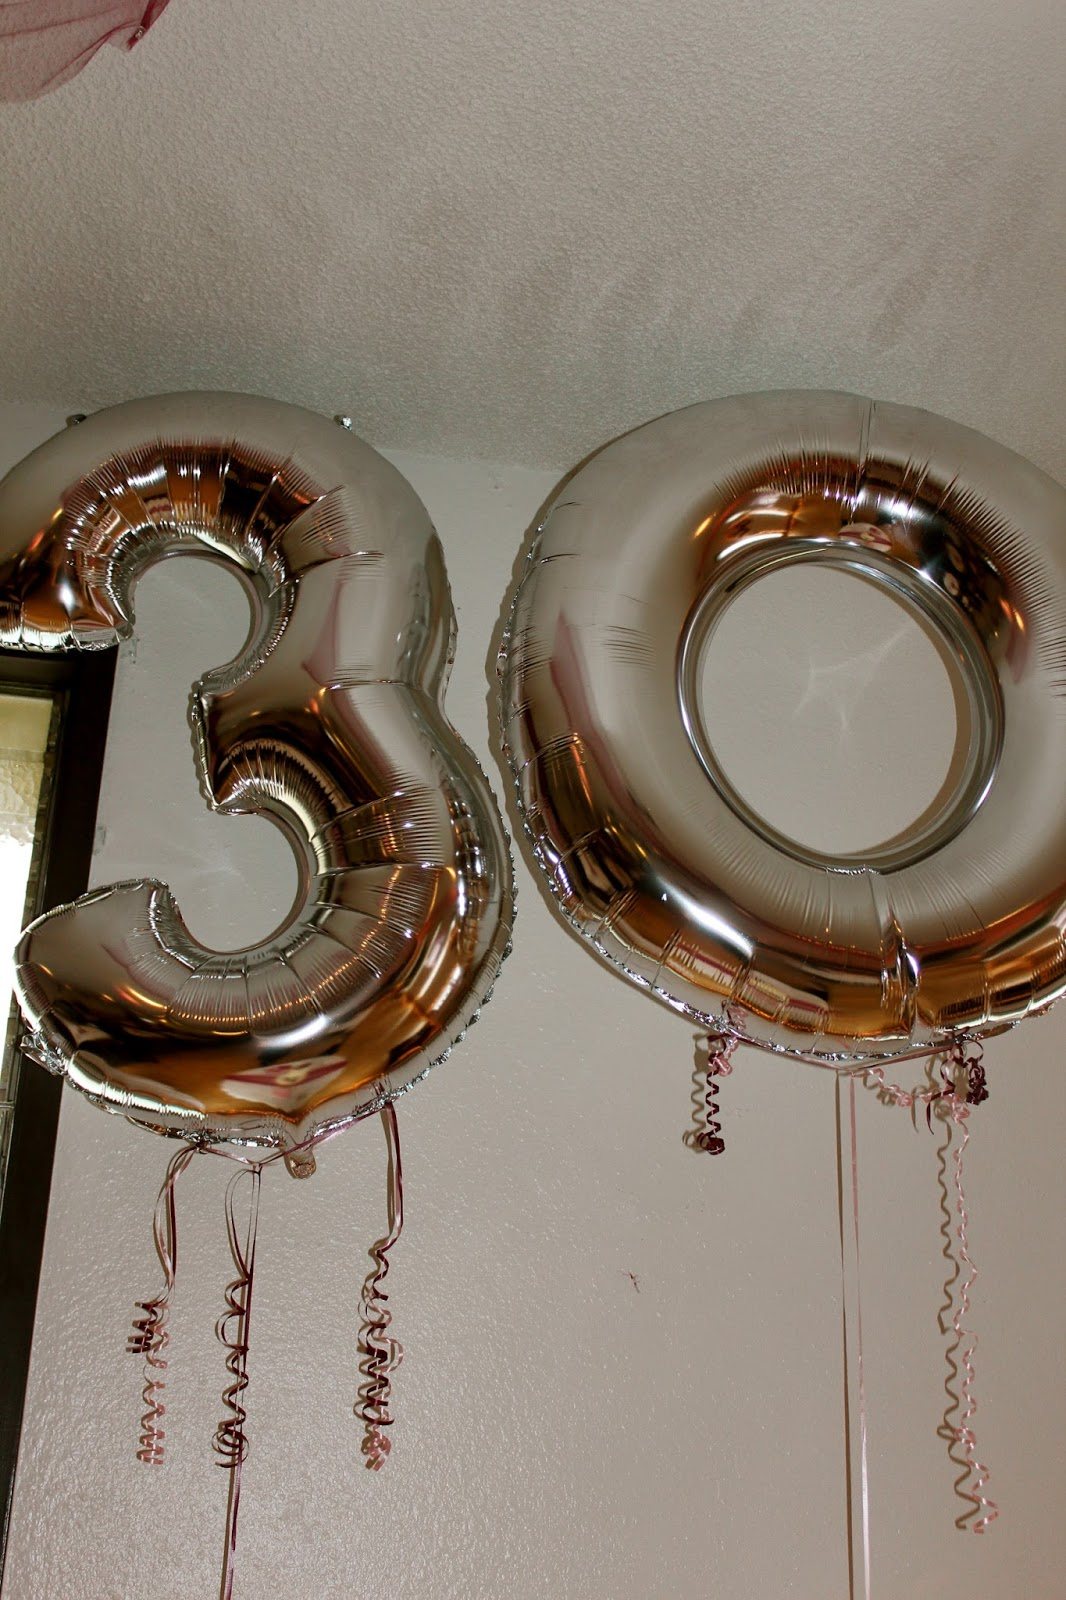 Woman in transition surprise 30th wedding anniversary for for 30th wedding anniversary decoration ideas